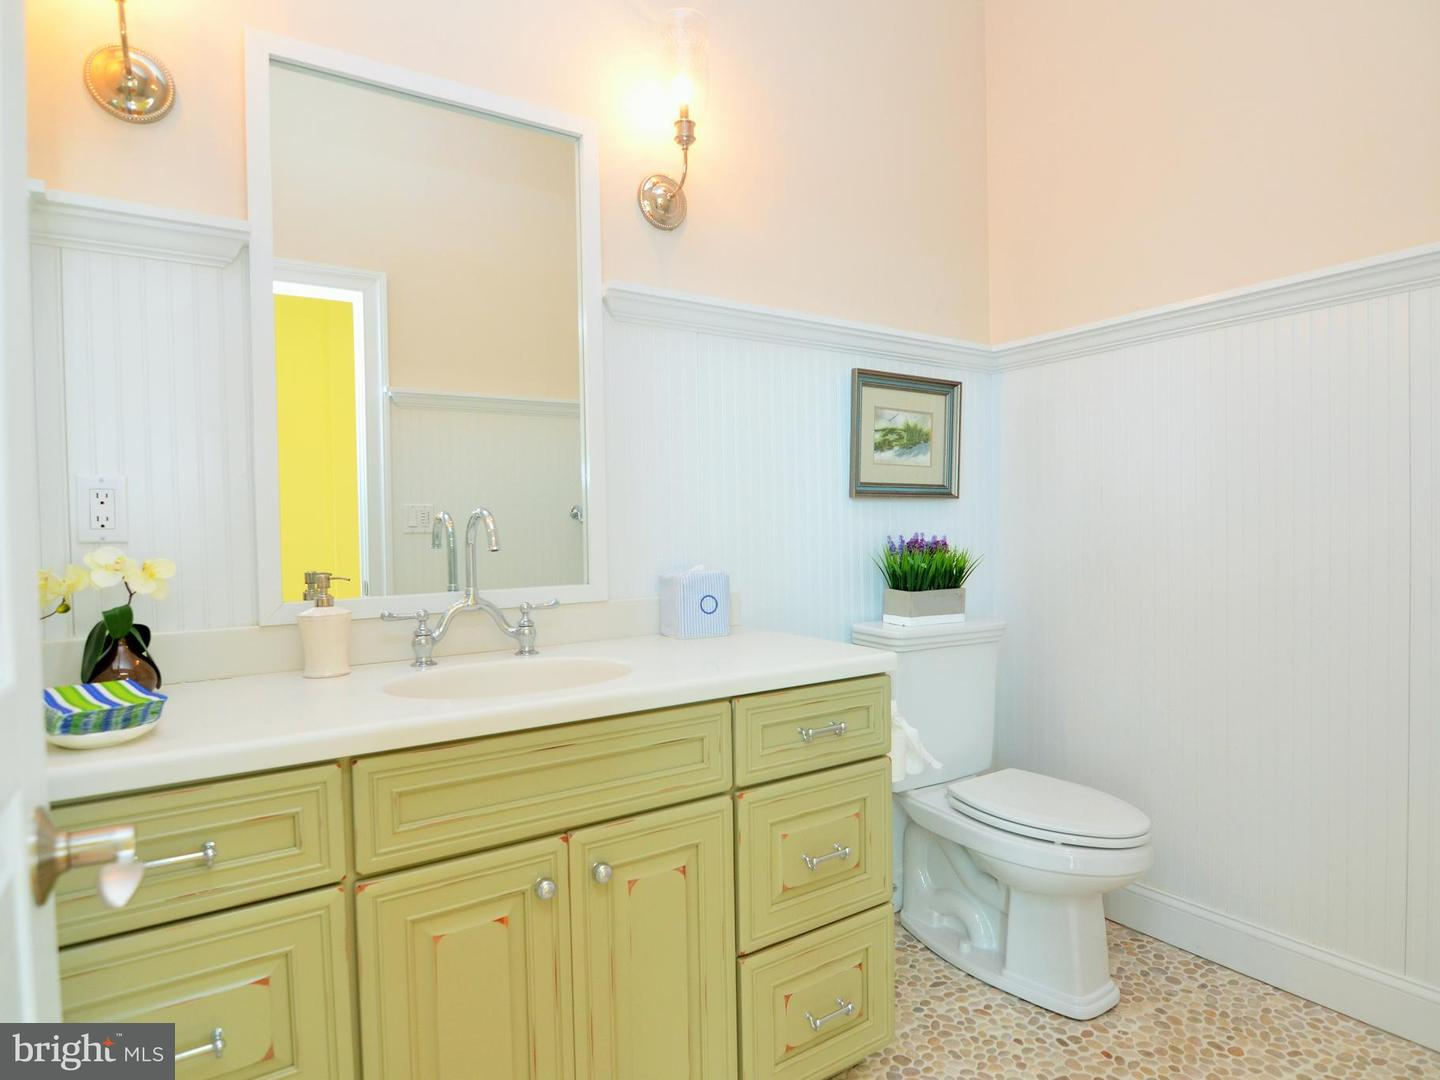 1002293530-300500811483-2018-09-25-15-08-25 31 Hall Ave | Rehoboth Beach, De Real Estate For Sale | MLS# 1002293530  - Suzanne Macnab